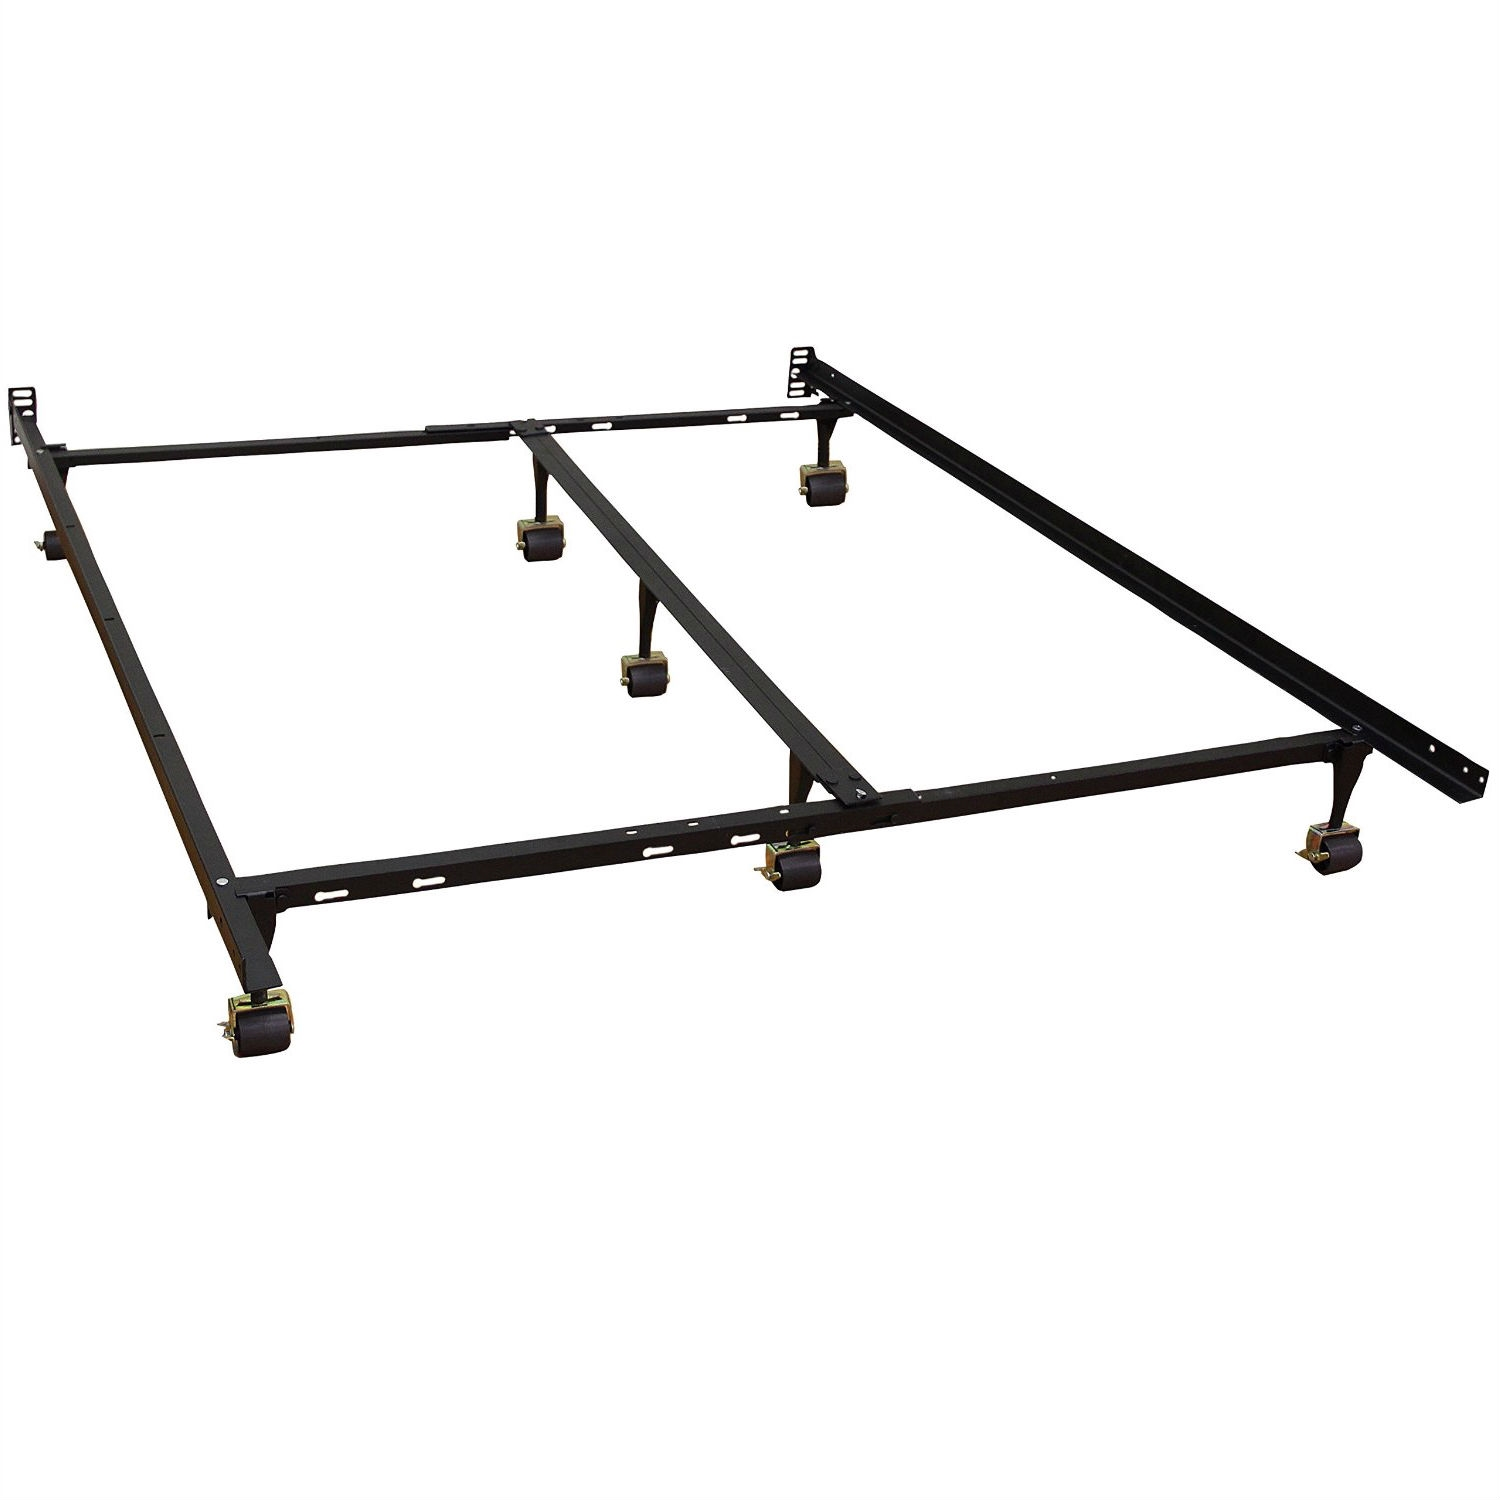 Queen size Heavy Duty 7 Leg Metal Bed Frame with Locking Rug